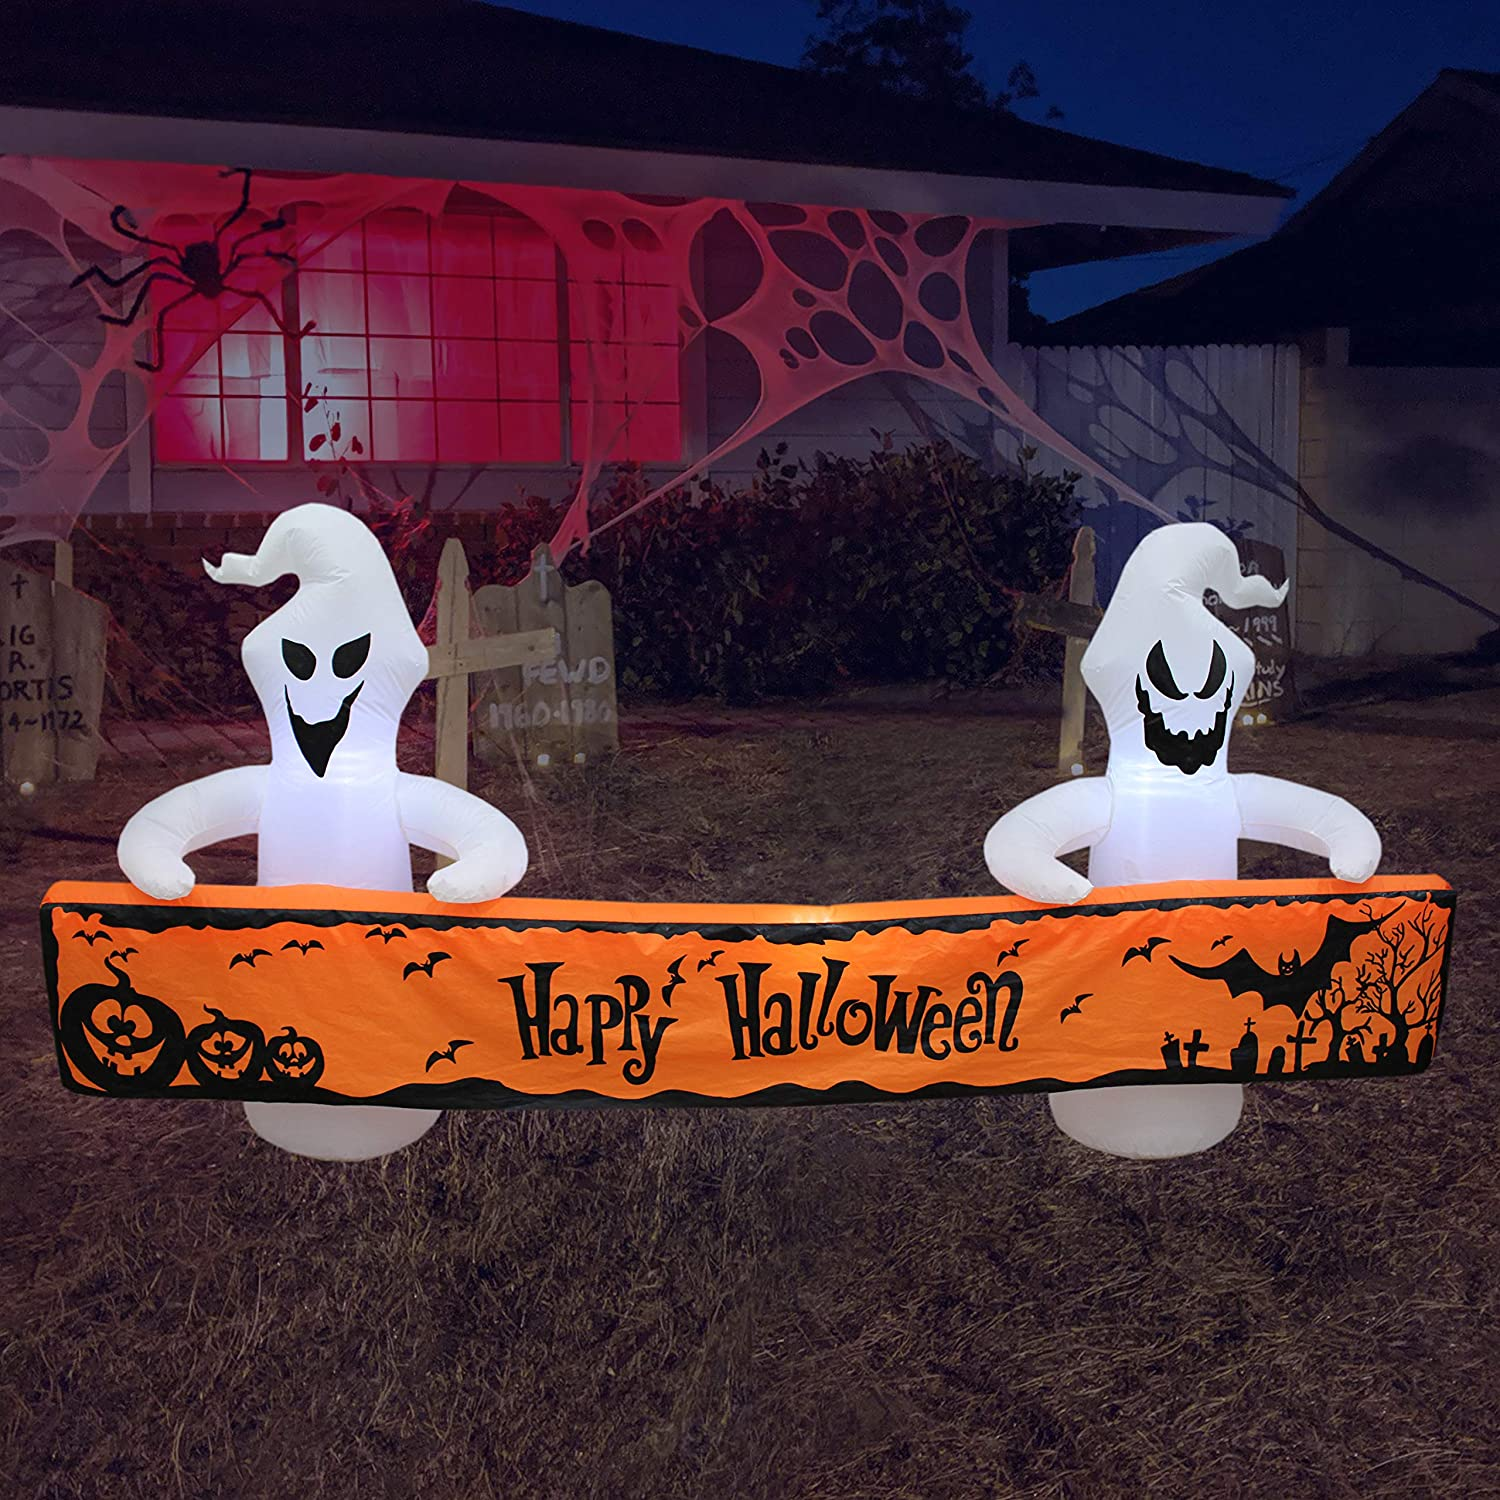 8 Foot Long Lighted Halloween Inflatable White Ghosts with Orange Banner LED Lights Decor Outdoor Indoor Holiday Decorations, Blow up Lighted Yard Decor, Giant Lawn Inflatables Home Family Outside